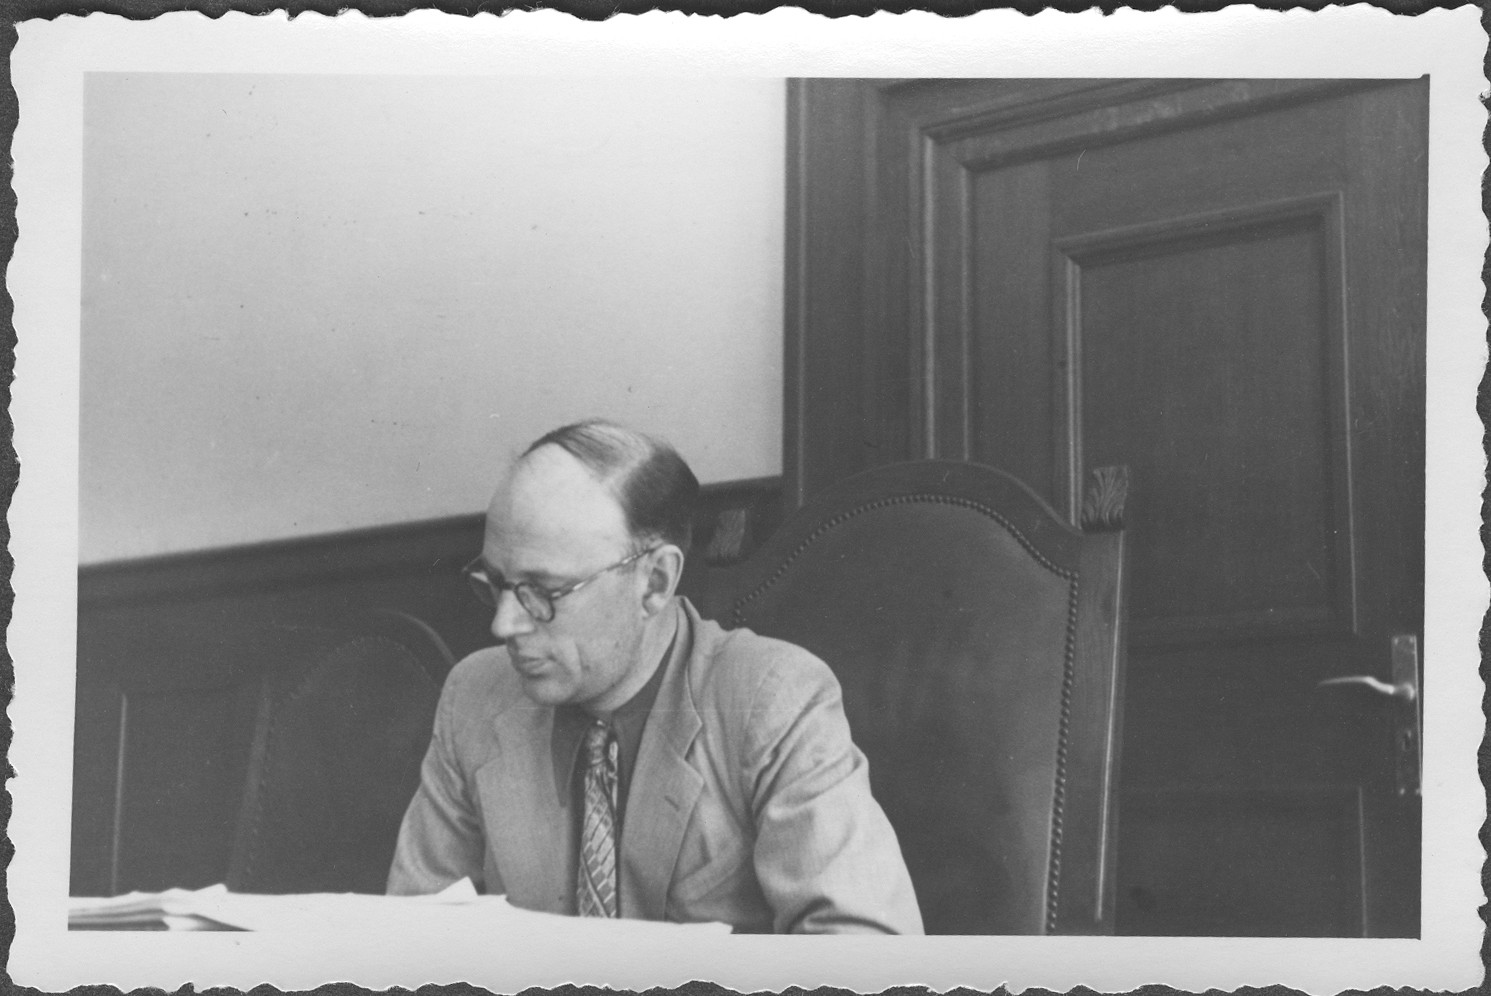 Portrait of I. Rasumov, Russian commissioner at the IMT Nuremberg commission hearings investigating indicted Nazi organizations.